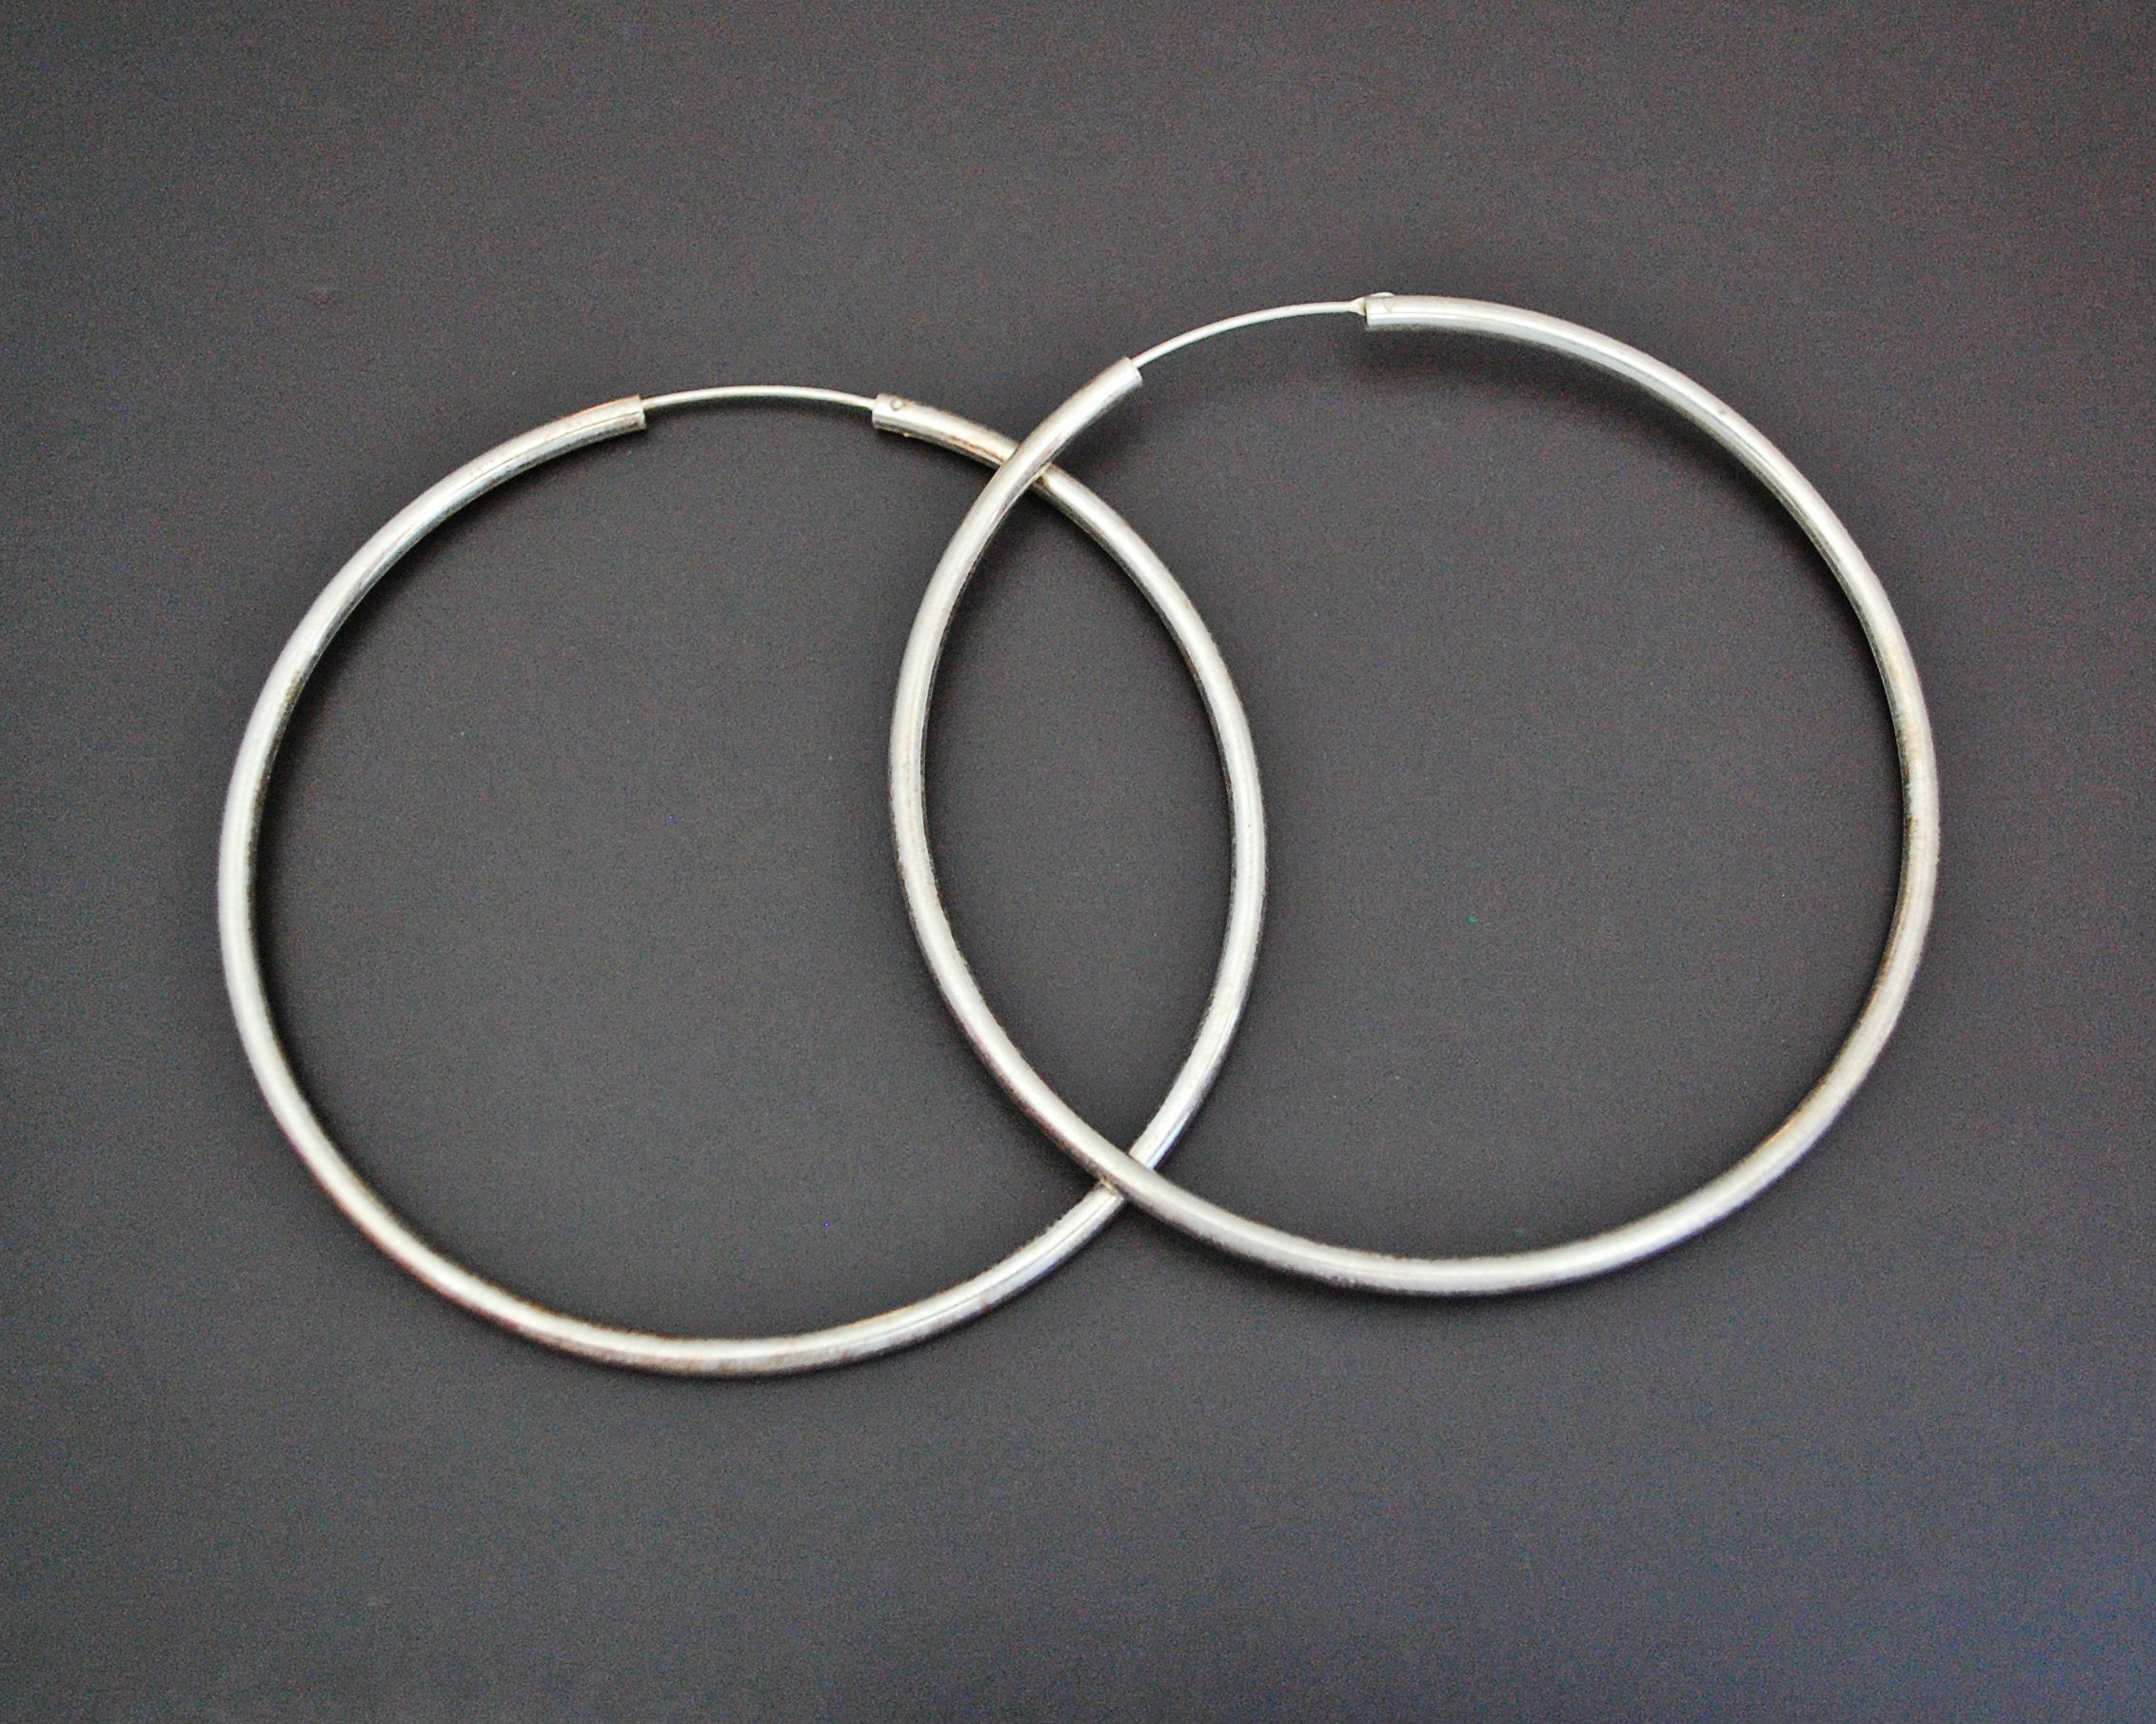 Huge Ethnic Hoop Earrings - XLARGE